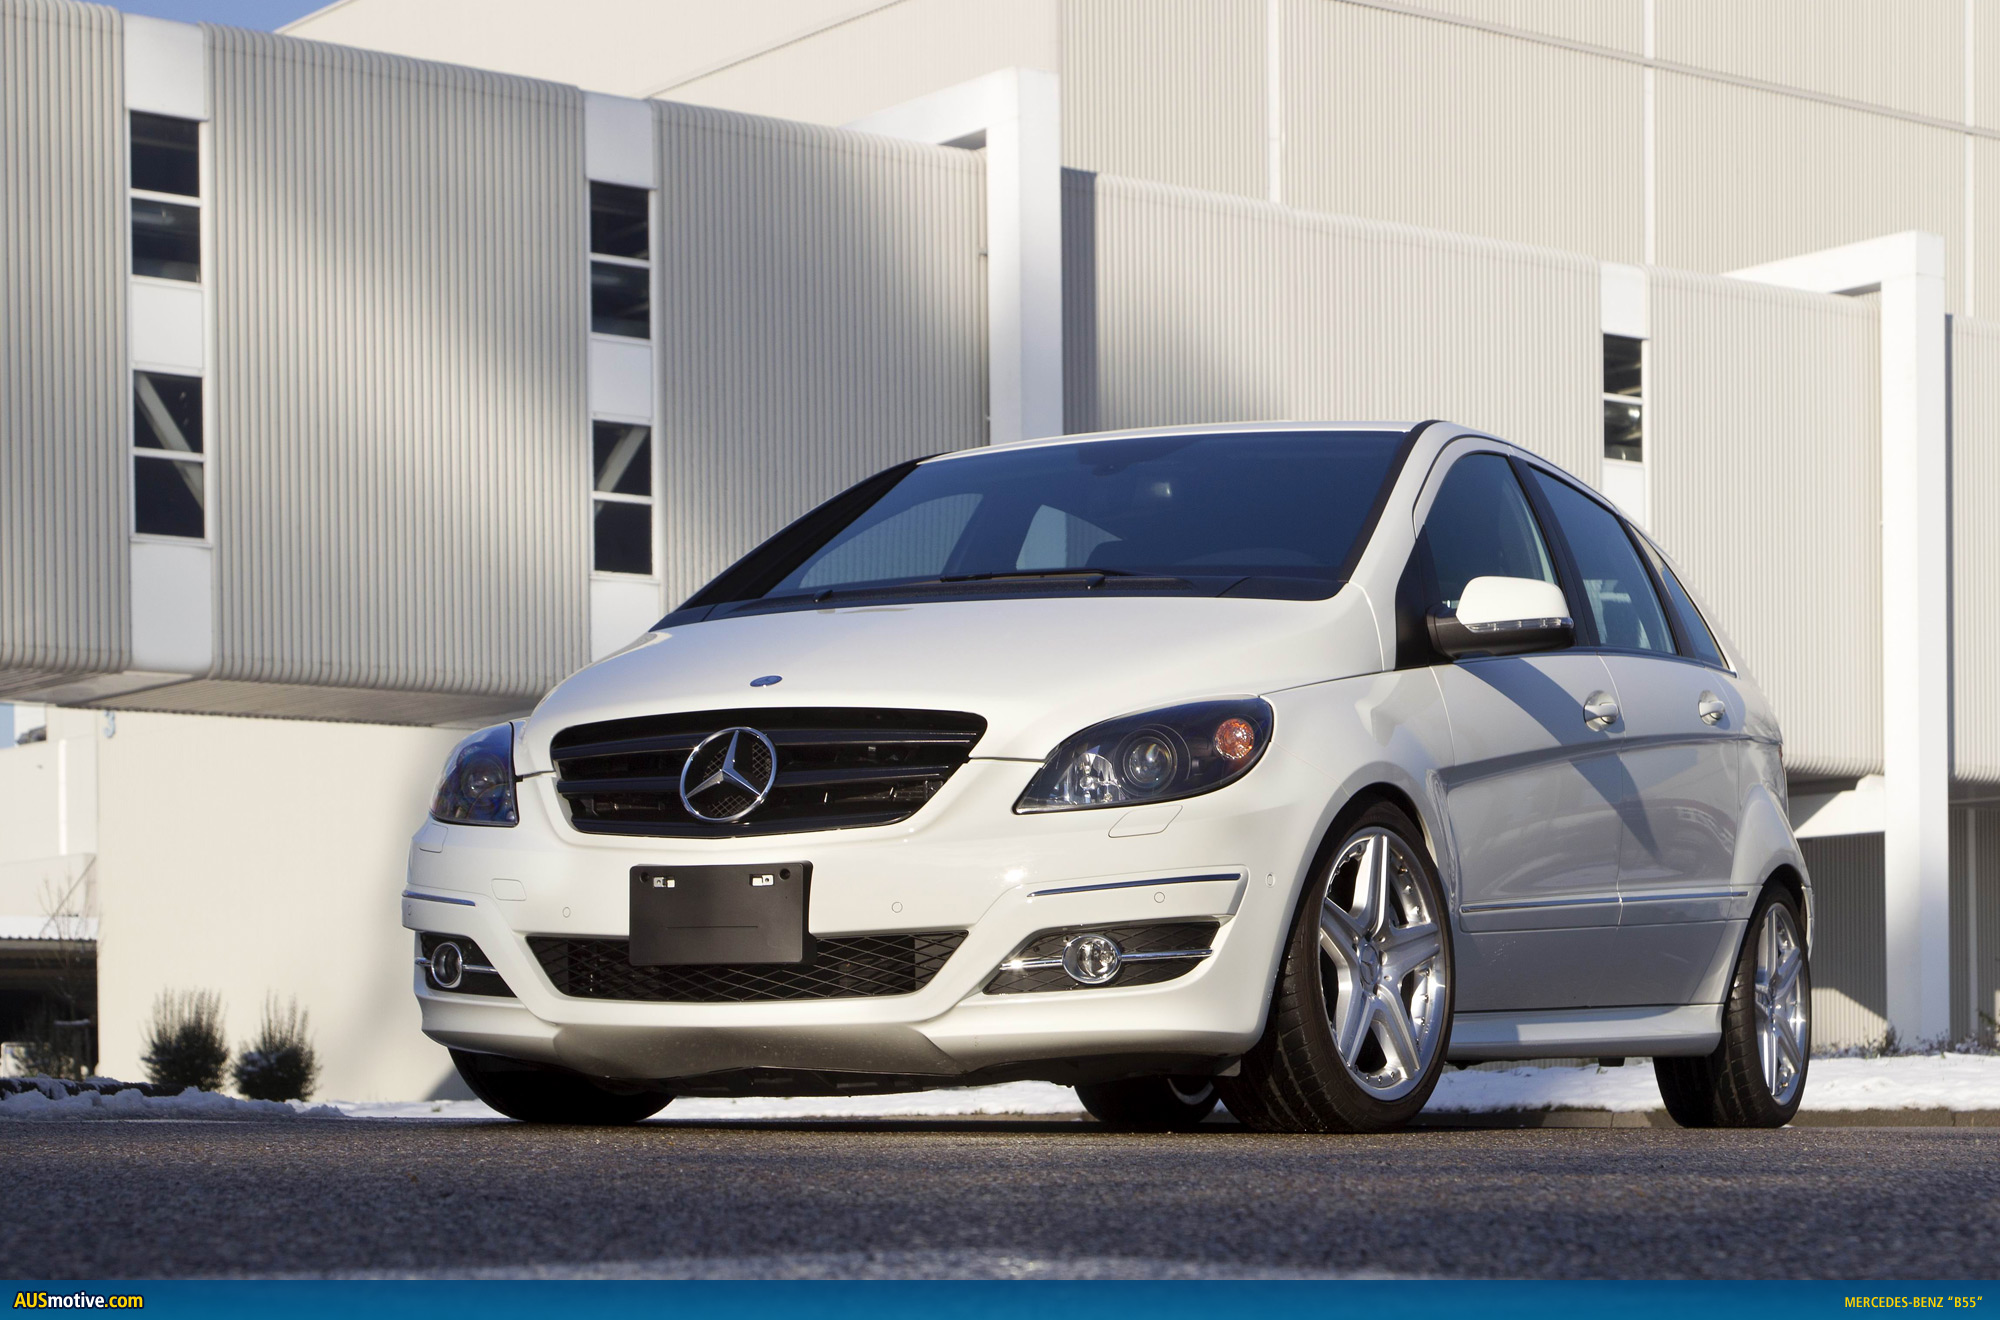 Mercedes benz trainees create b55 bombshell for Mercedes benz creator